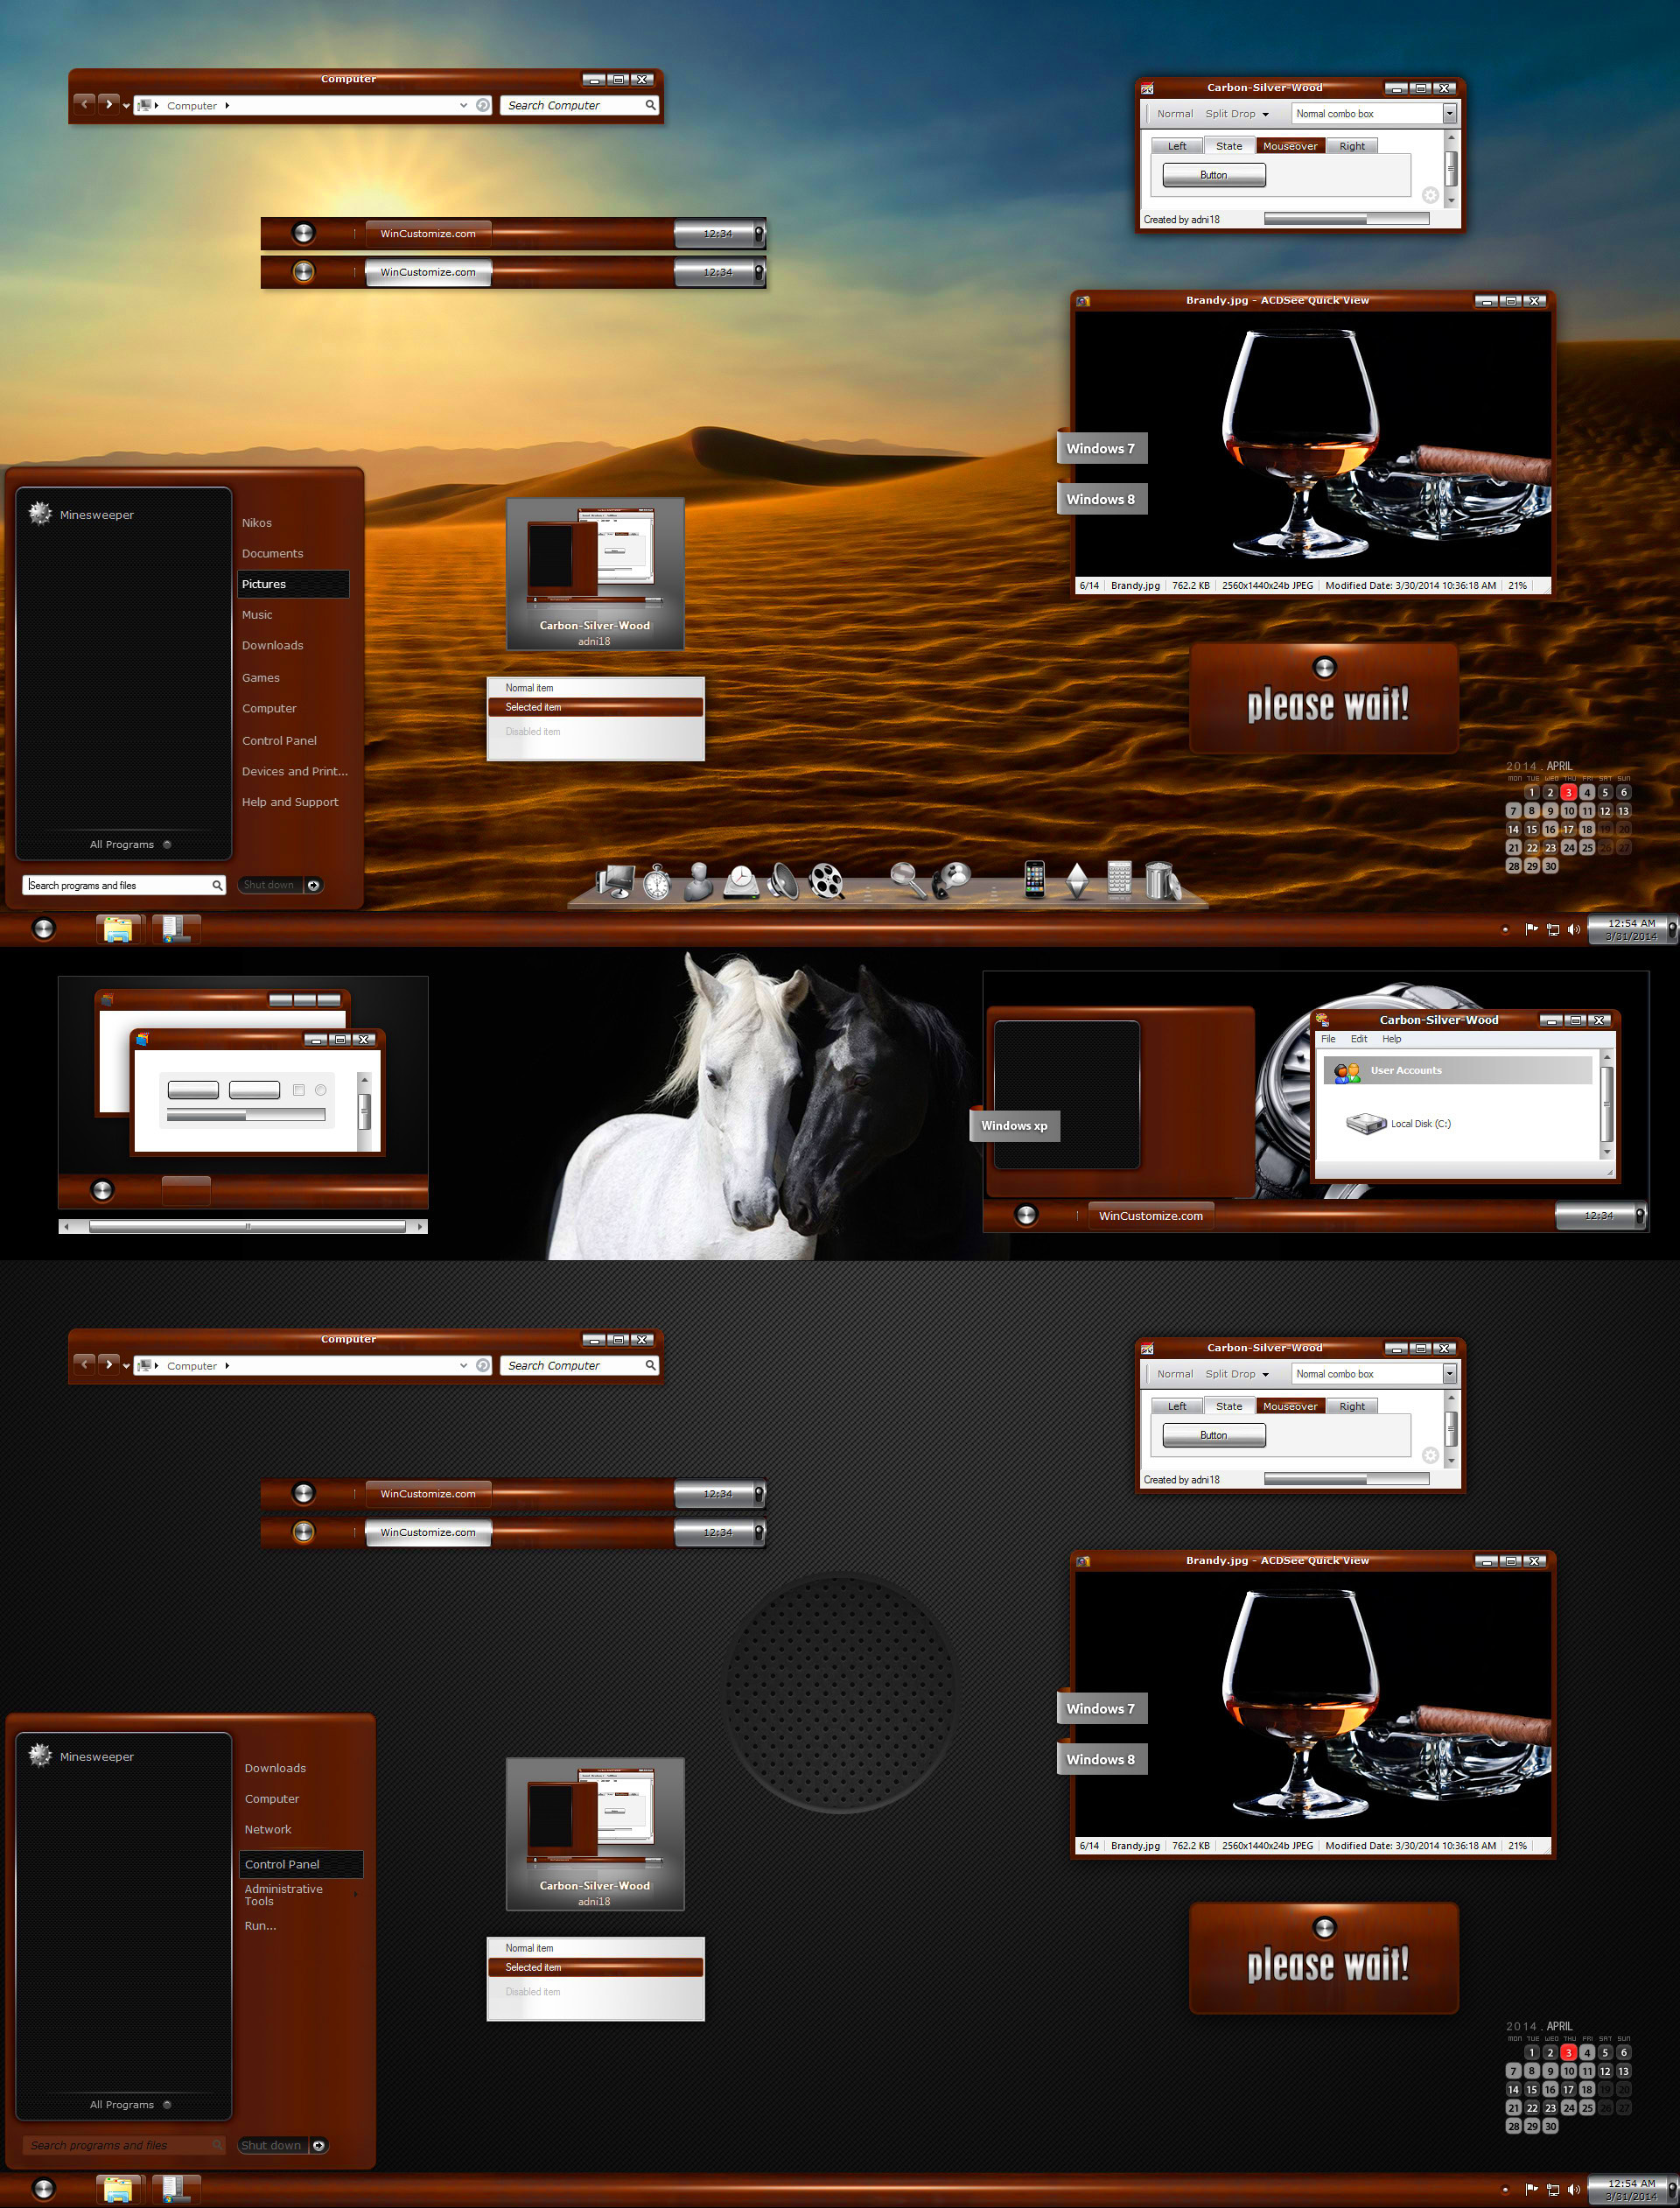 Screensavers and Live Wallpapers